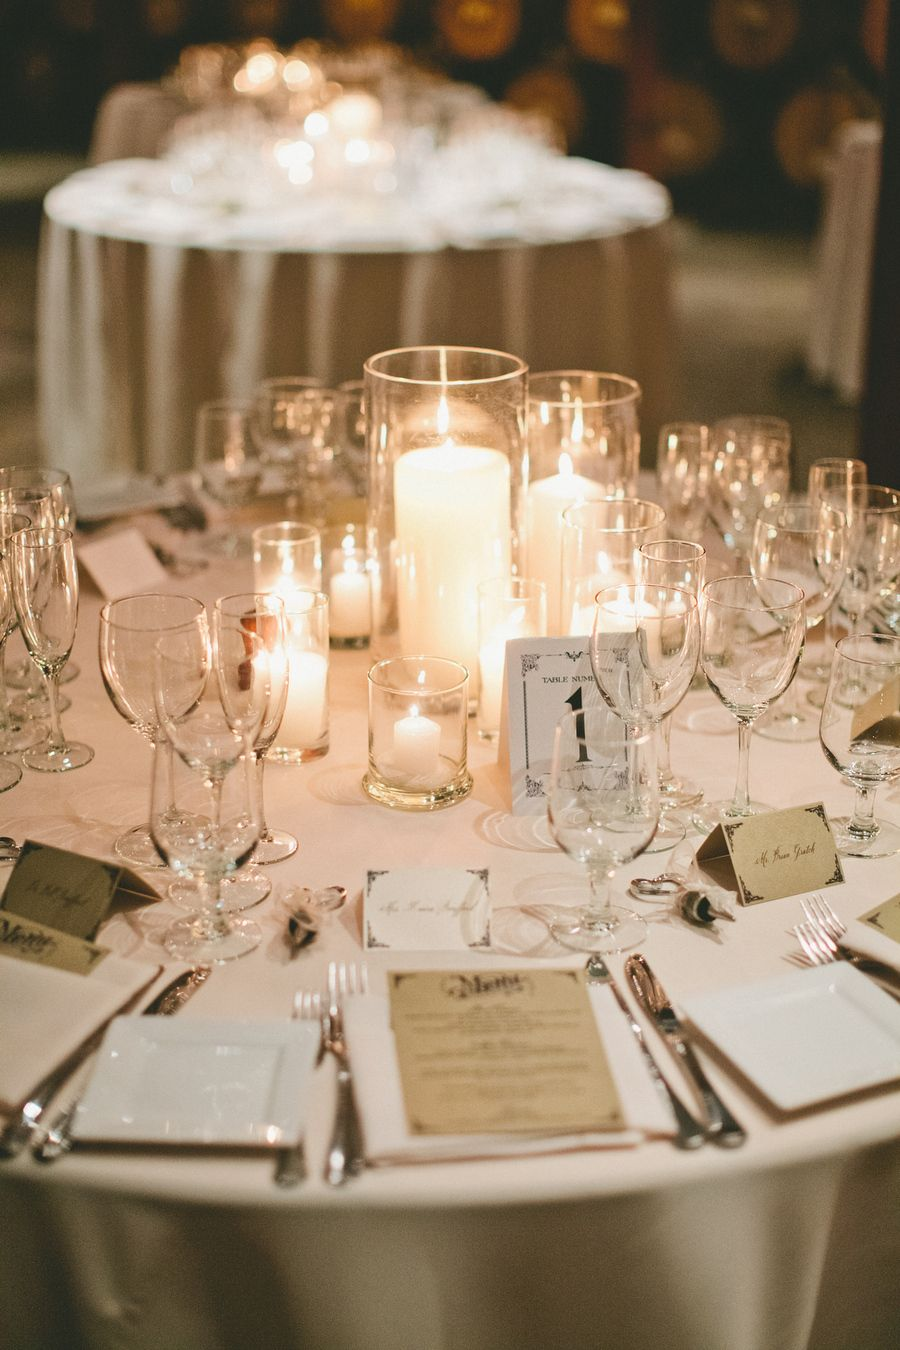 Napa Valley Wedding From Fleurs De France Onelove Photography Candle Wedding Centerpieces Wedding Candles Wedding Table Decorations